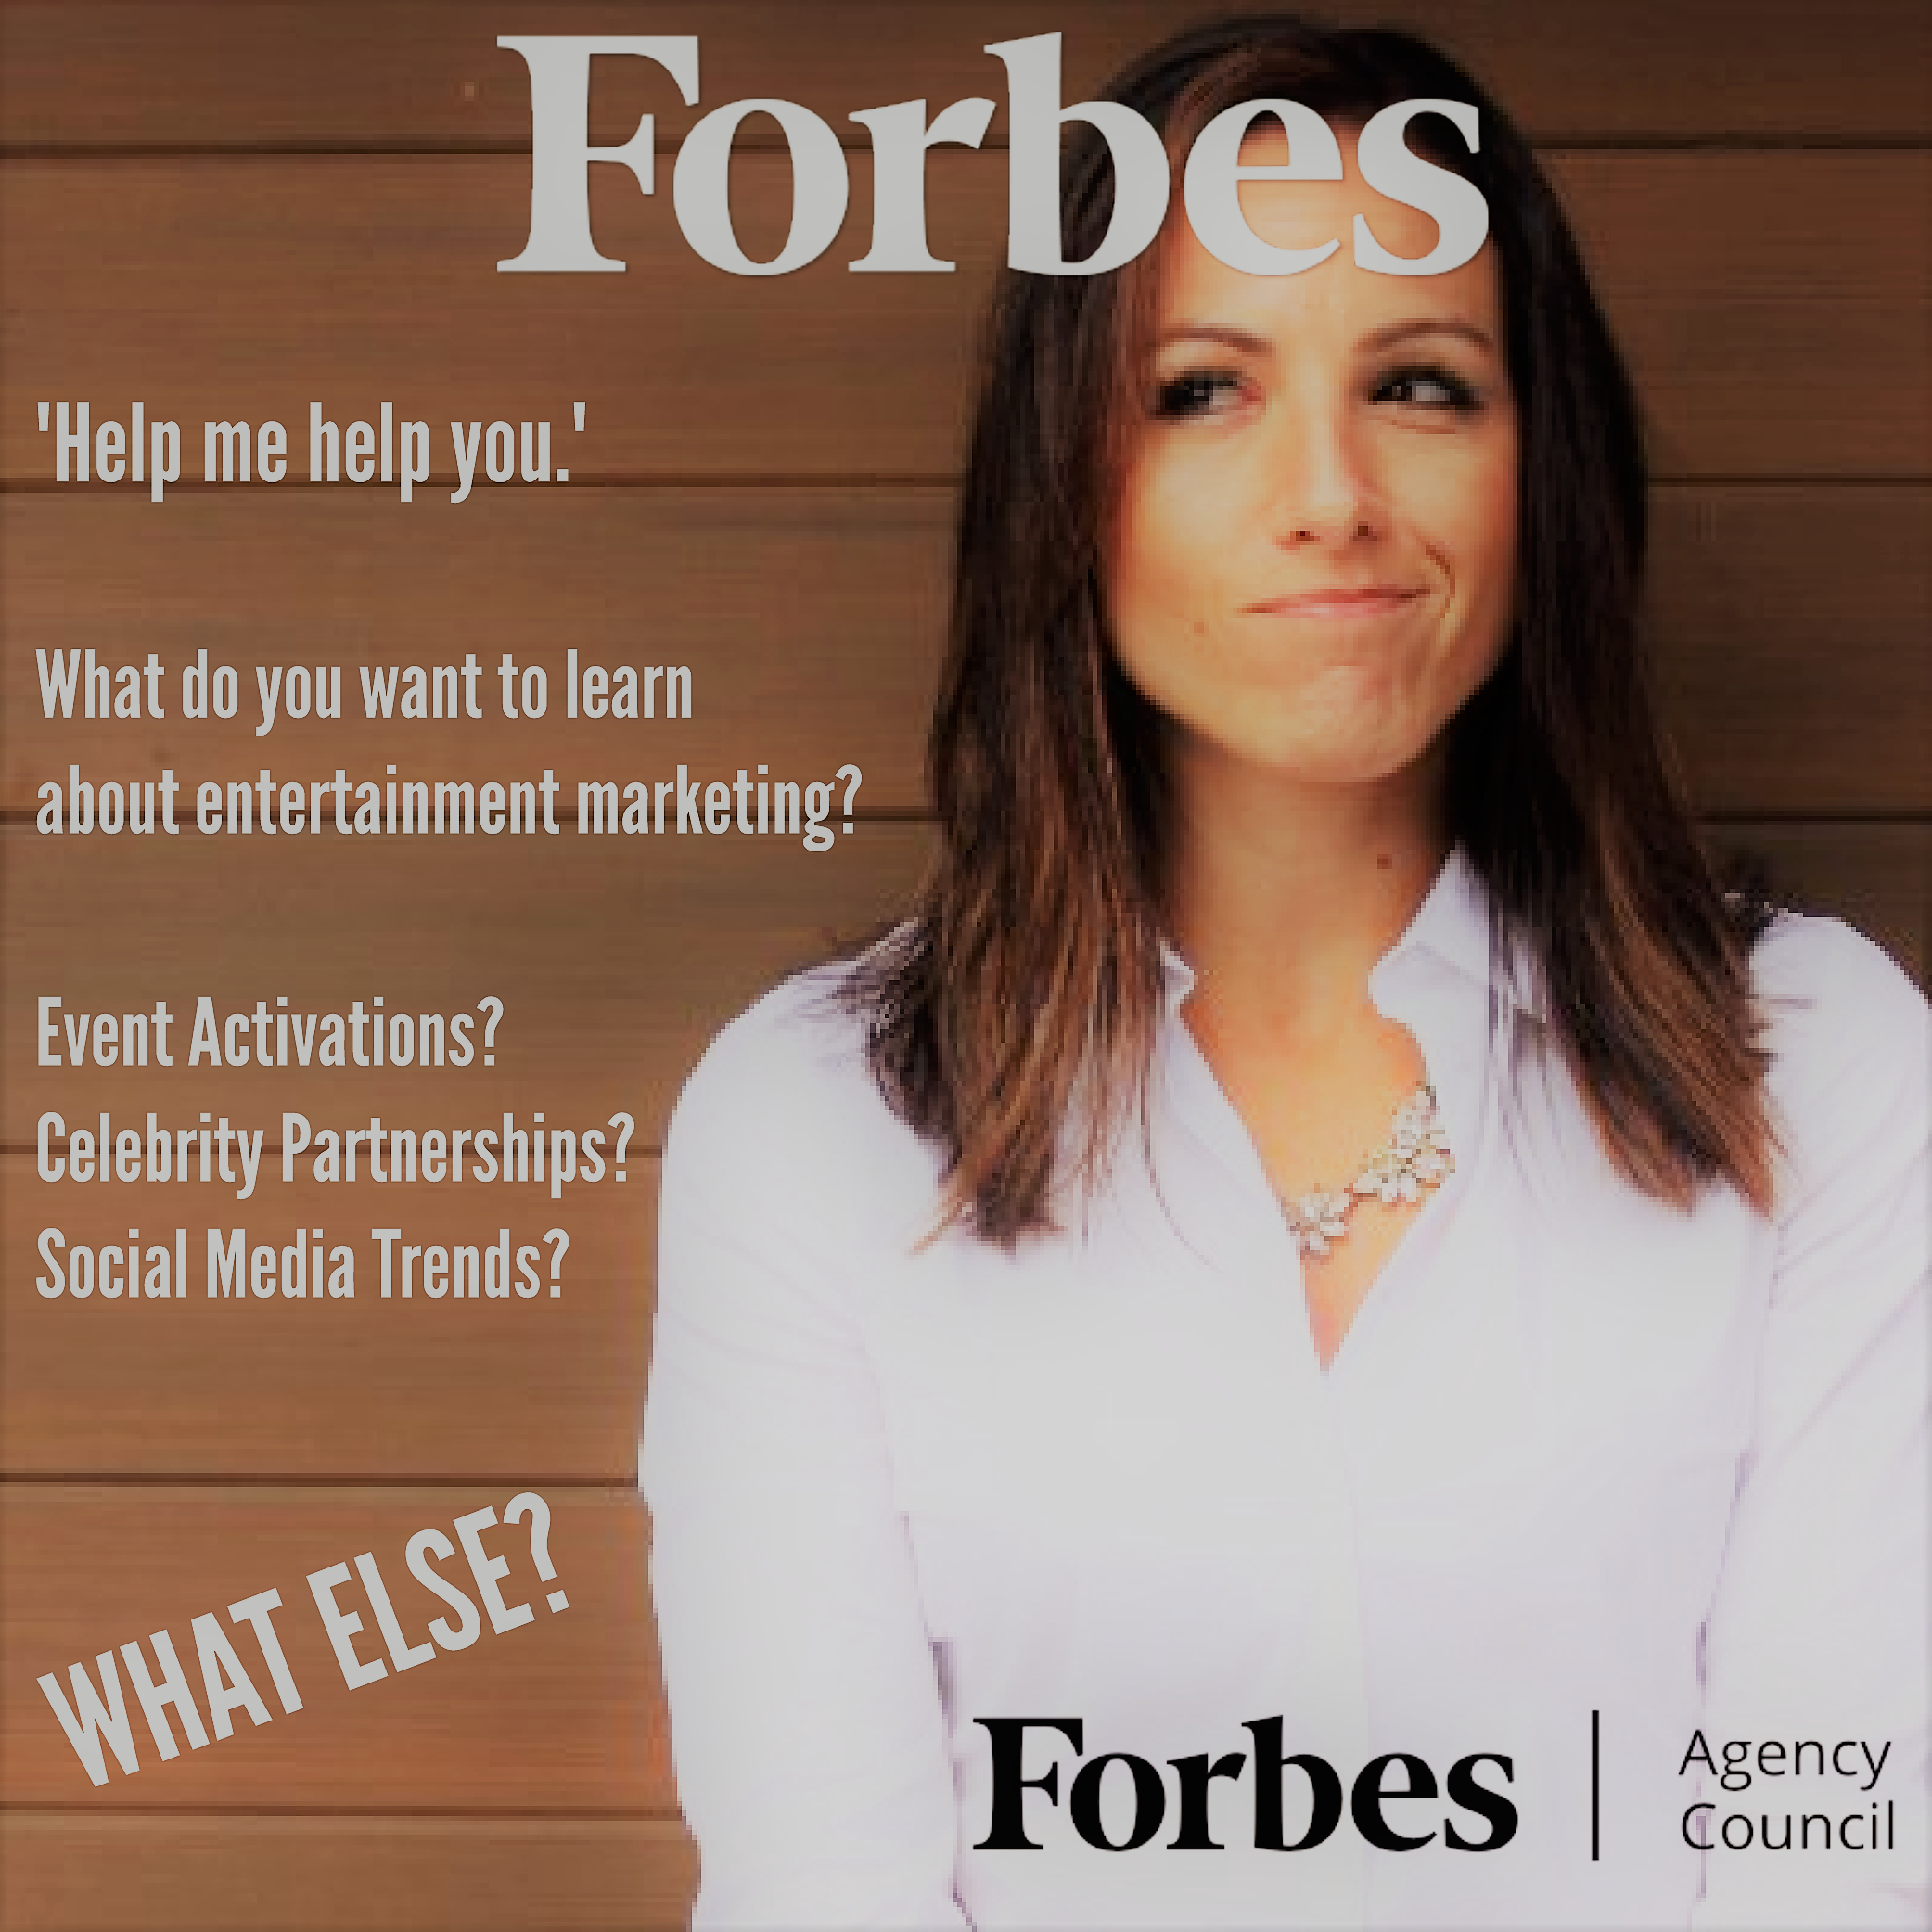 Forbes Agency Council - Help Me Help You 2.0.png